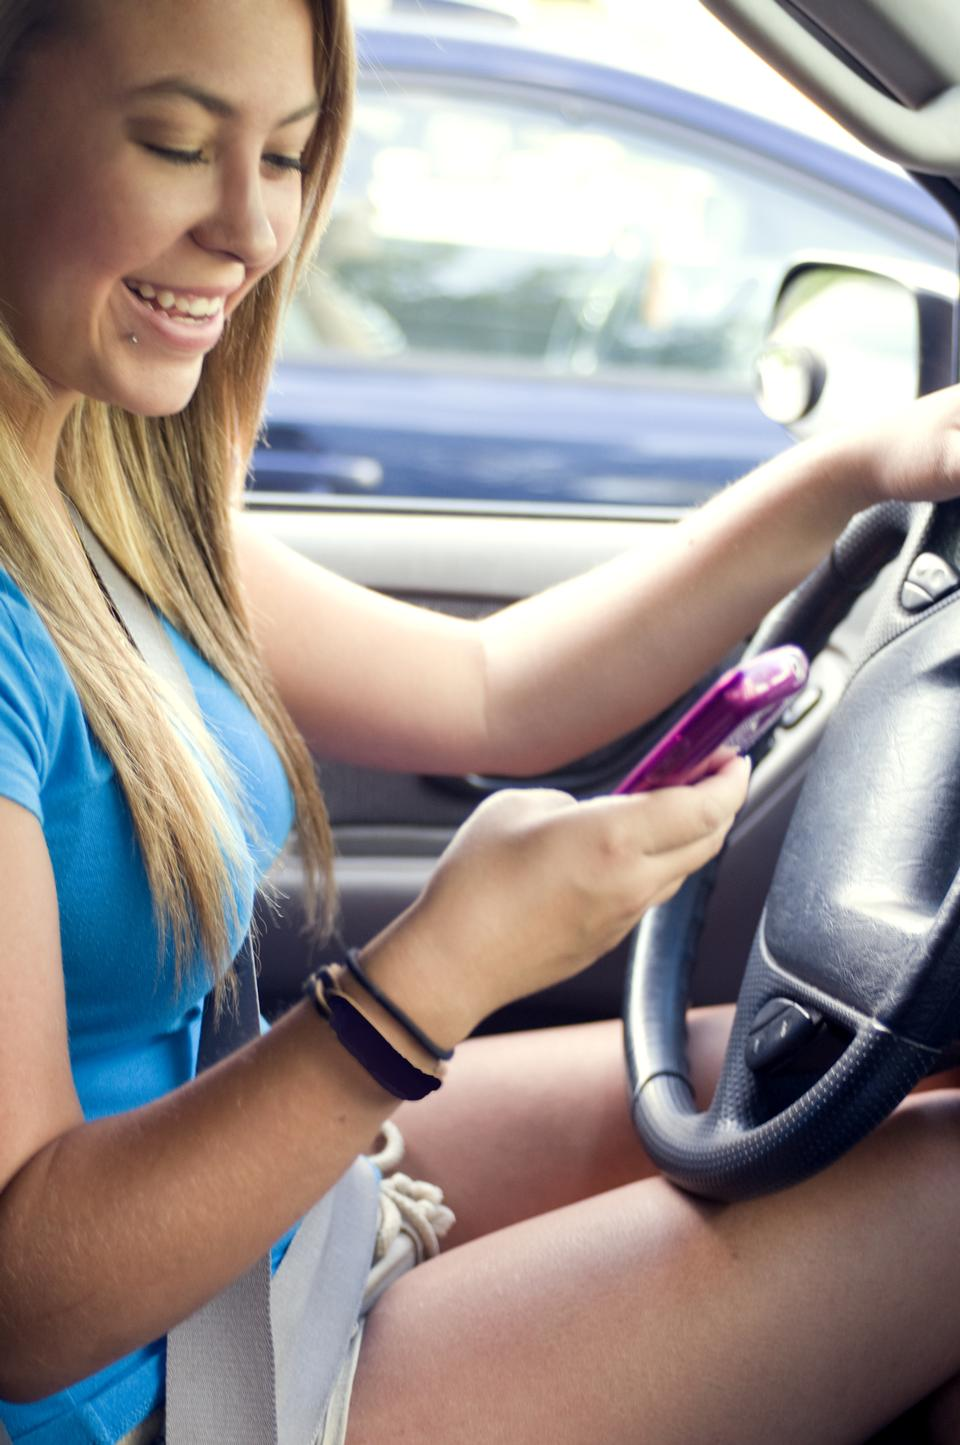 Free A Teen Girl Texting While Driving